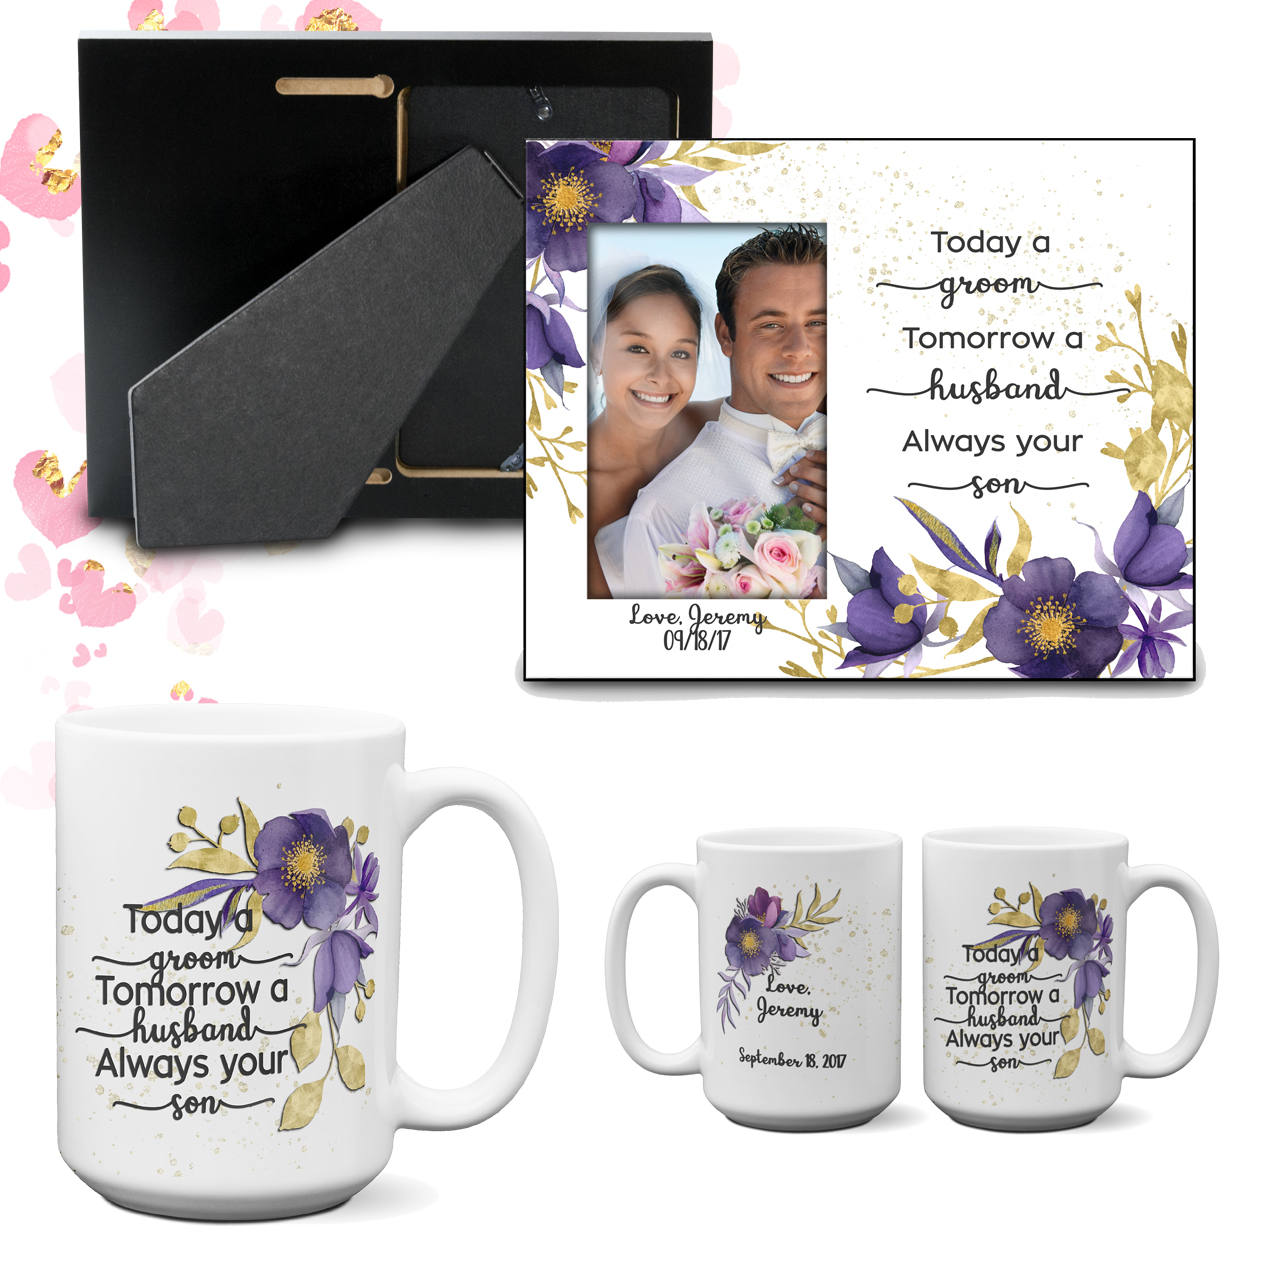 Parent Thank You Wedding Gift Today a Groom - Always your Son Frame Coffee Mug Gift From Son